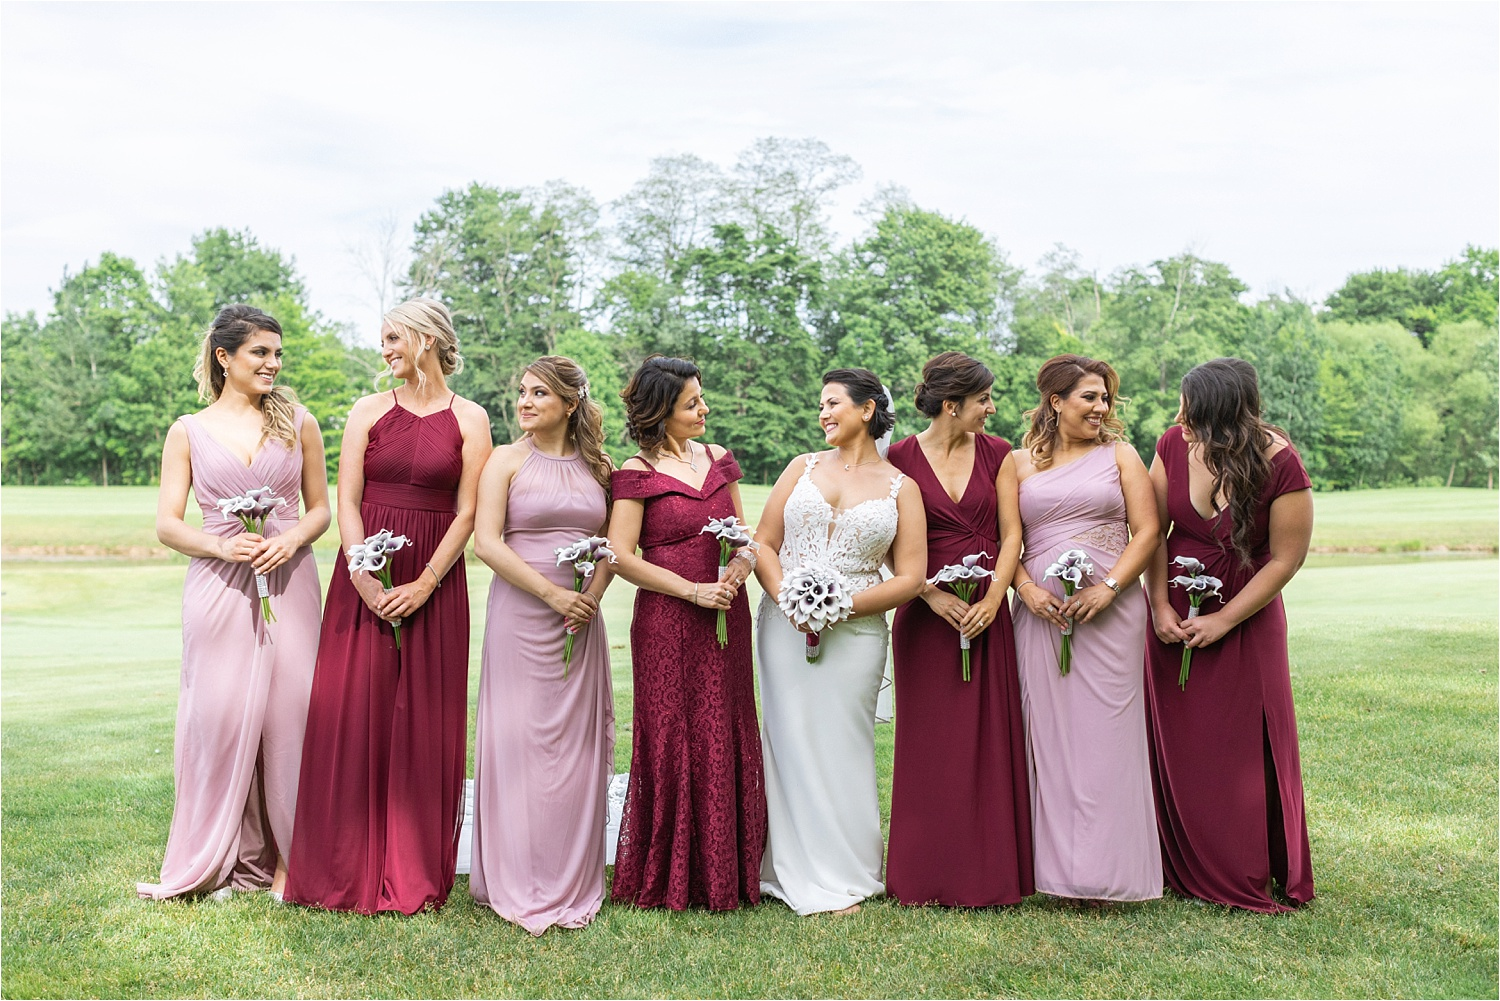 Love these bridesmaids dresses from David's Bridal!